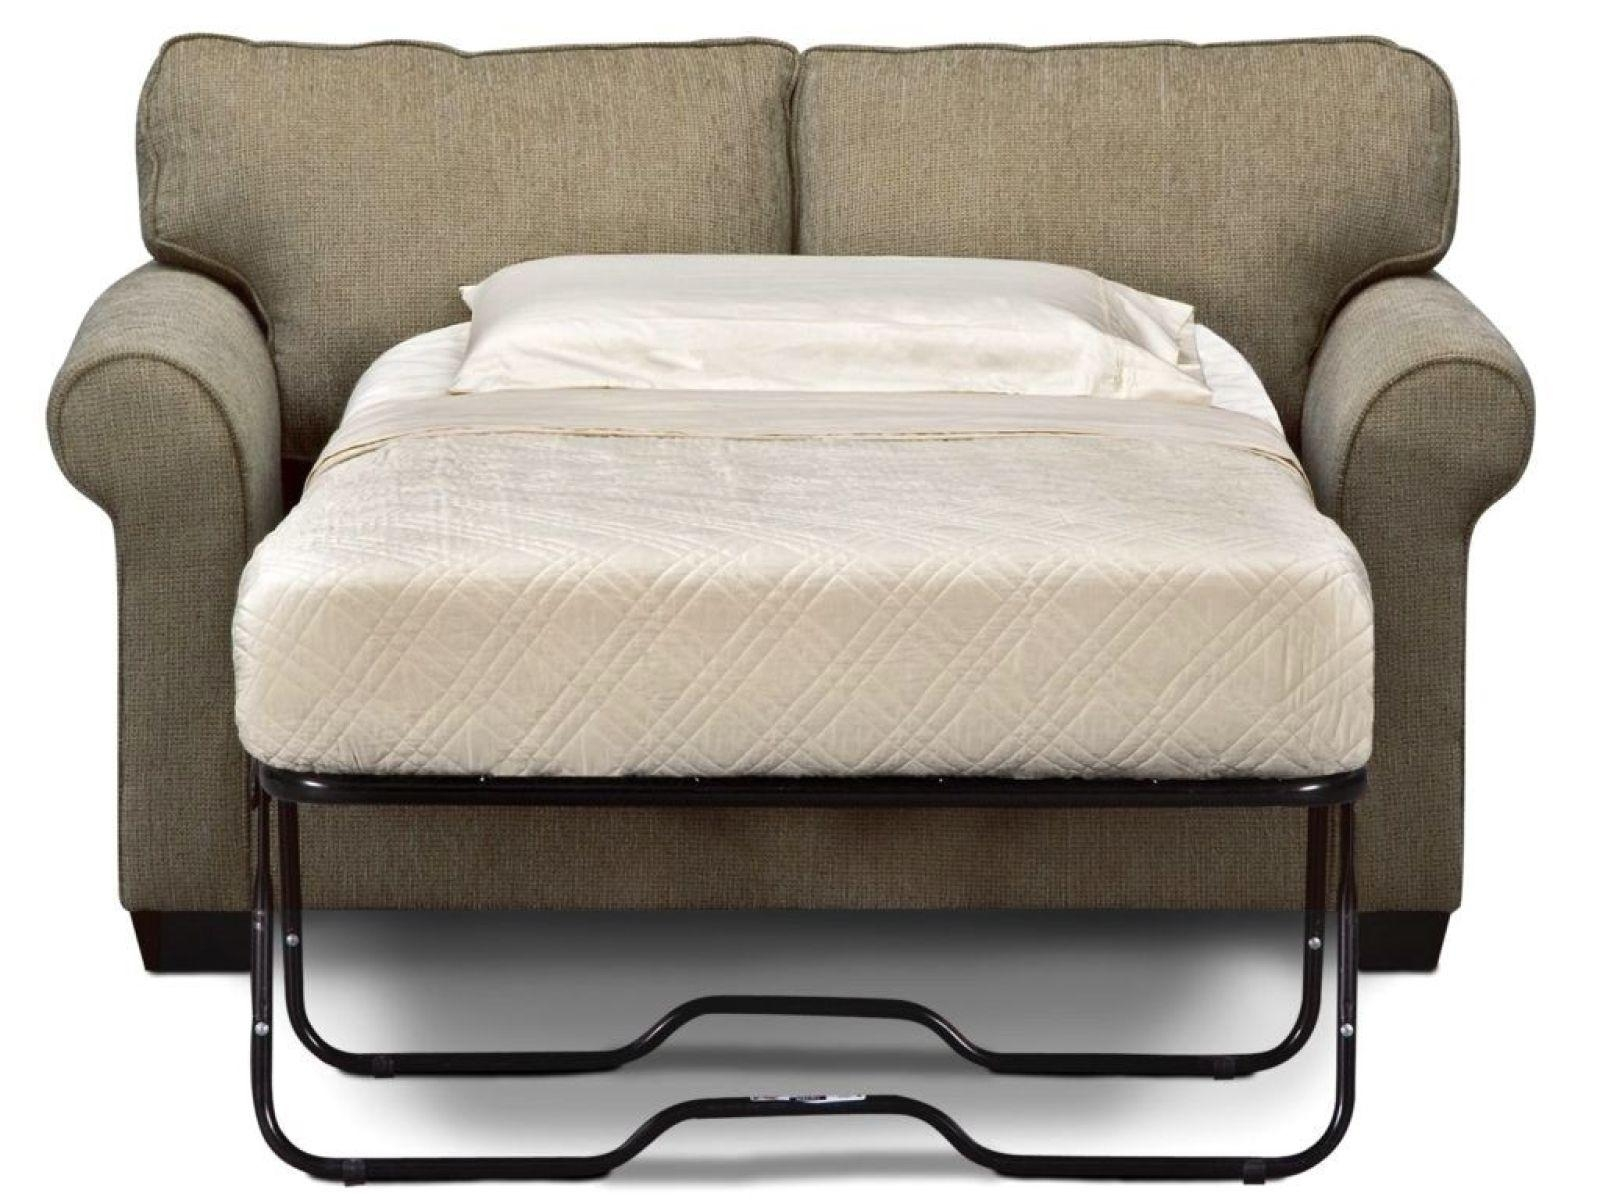 Sofas Center : Full Size Sofa Beds Sale Mattress Protector Sheets Intended For Sofa Beds Sheets (Image 13 of 20)